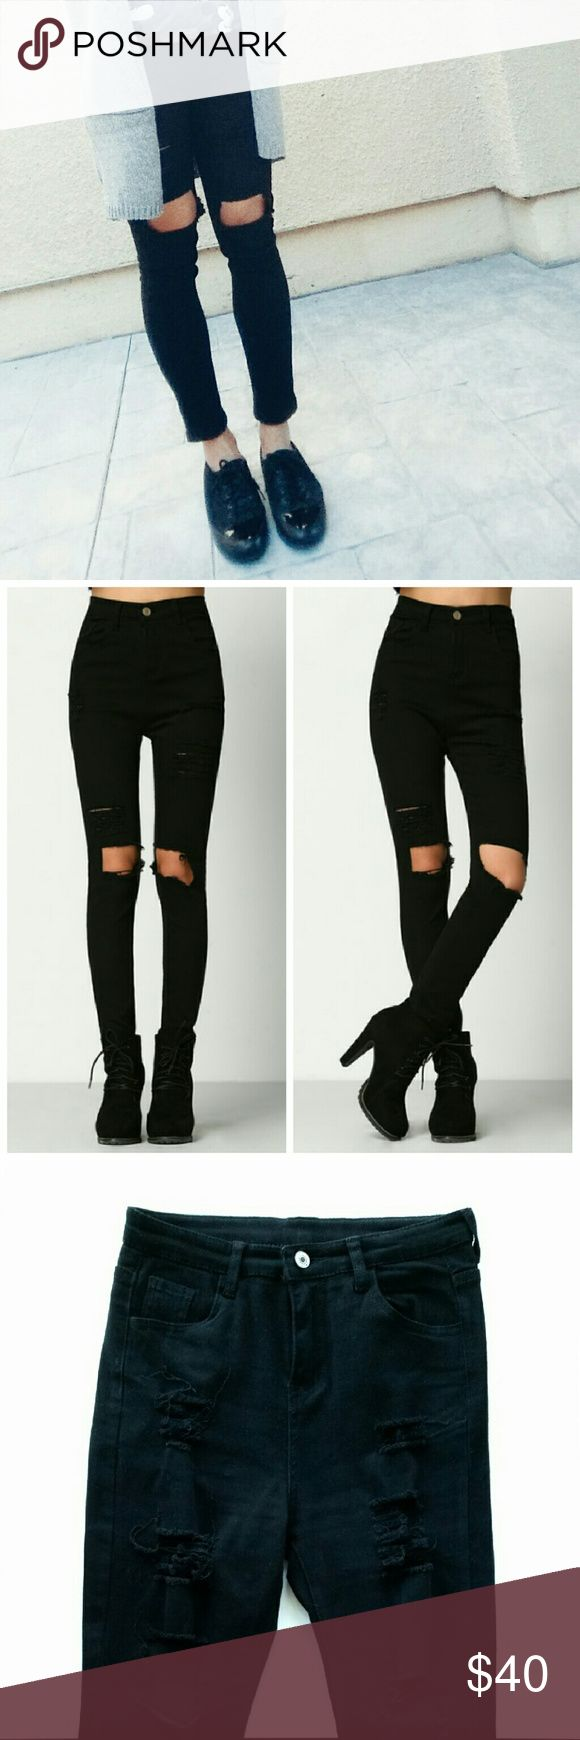 """High Waisted Distressed/Ripped Skinny Black Jeans High Waisted Distressed / Ripped Skinny Black Jeans  *High waisted  (comes up right about or above belly button) *Ripped right above your knees. Don't have to worry about holes getting bigger because of your knee movements rips them further.  *Fabric has some stretch  *Size Small - fits US 0-2 / Waist : 12"""" flat / Inseam : 25.5""""  *Size Medium - fits US 4-6 / Waist : 14"""" flat / Inseam : 26"""" *I'm normally size 26-27 in jeans and modeling medium…"""